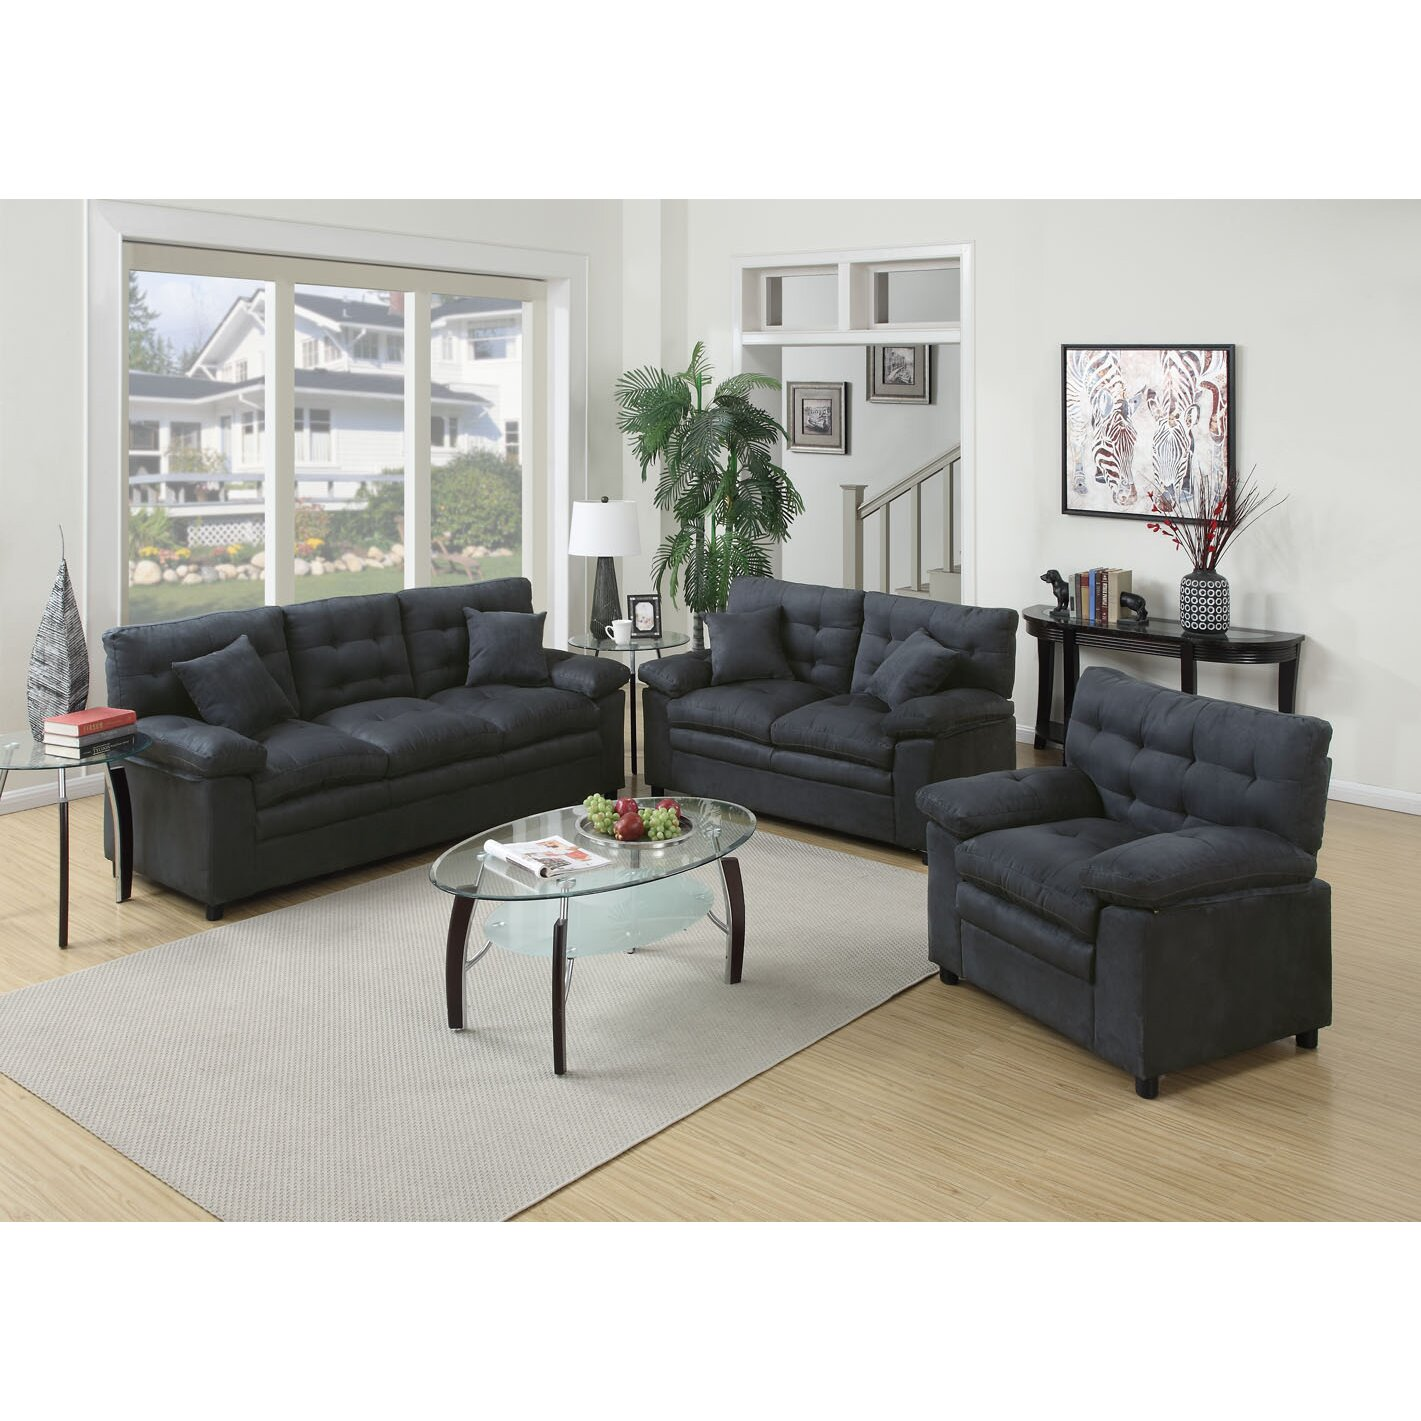 poundex bobkona colona 3 piece living room set reviews wayfair. Black Bedroom Furniture Sets. Home Design Ideas